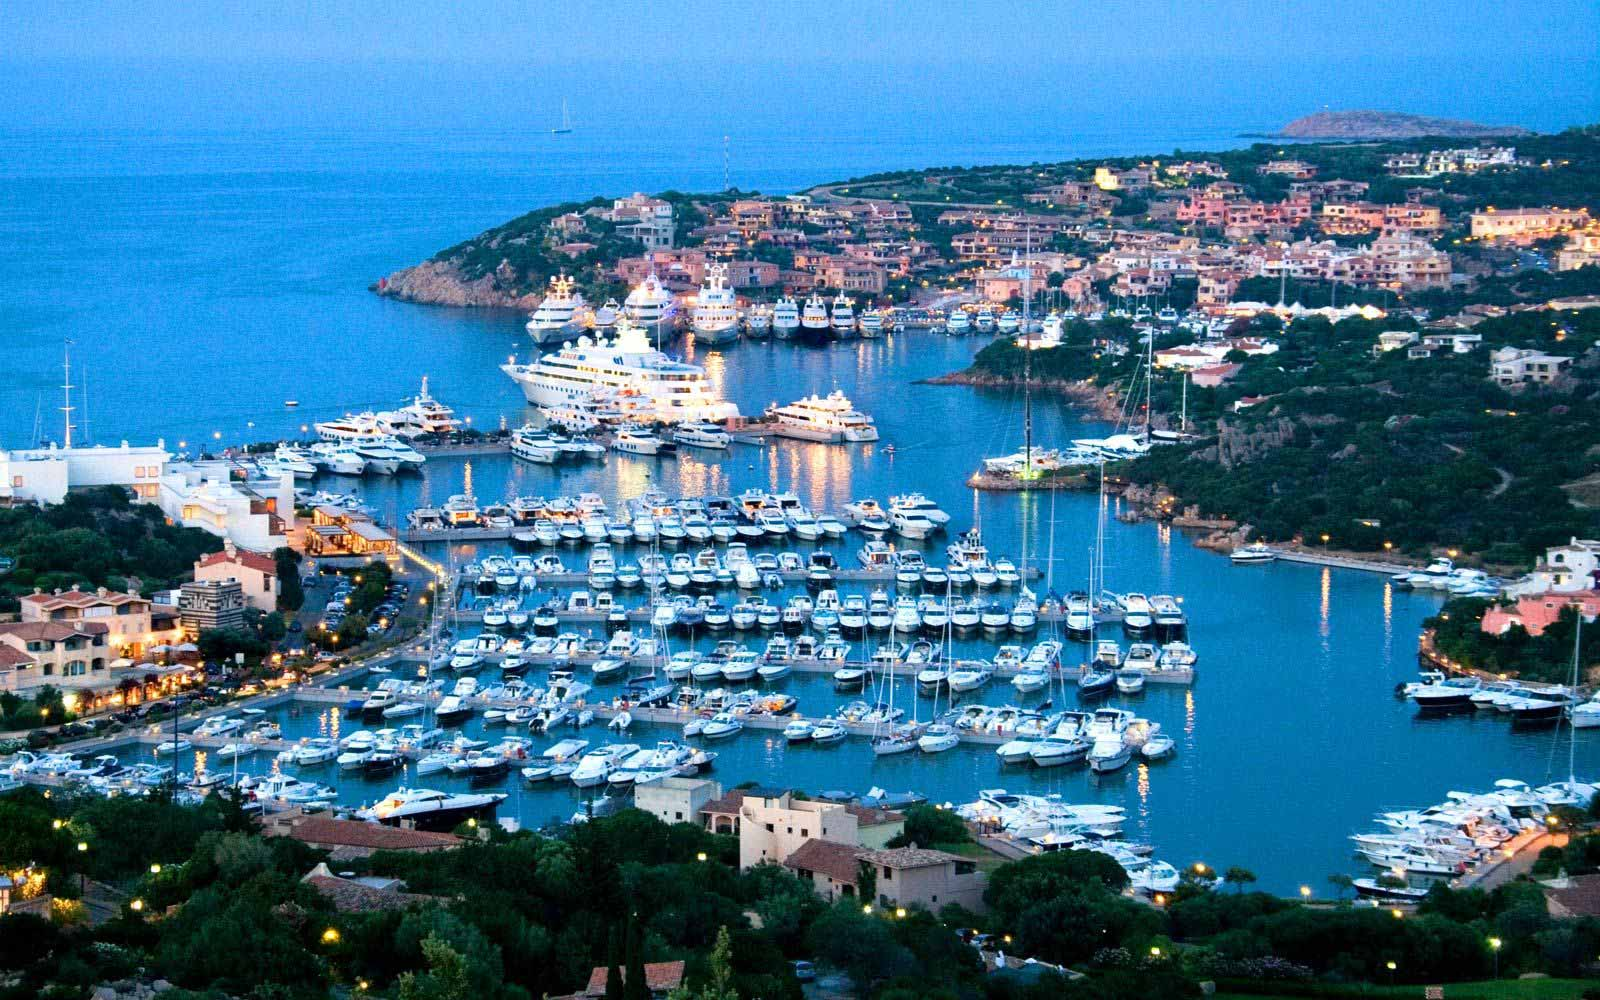 Porto Cervo at night